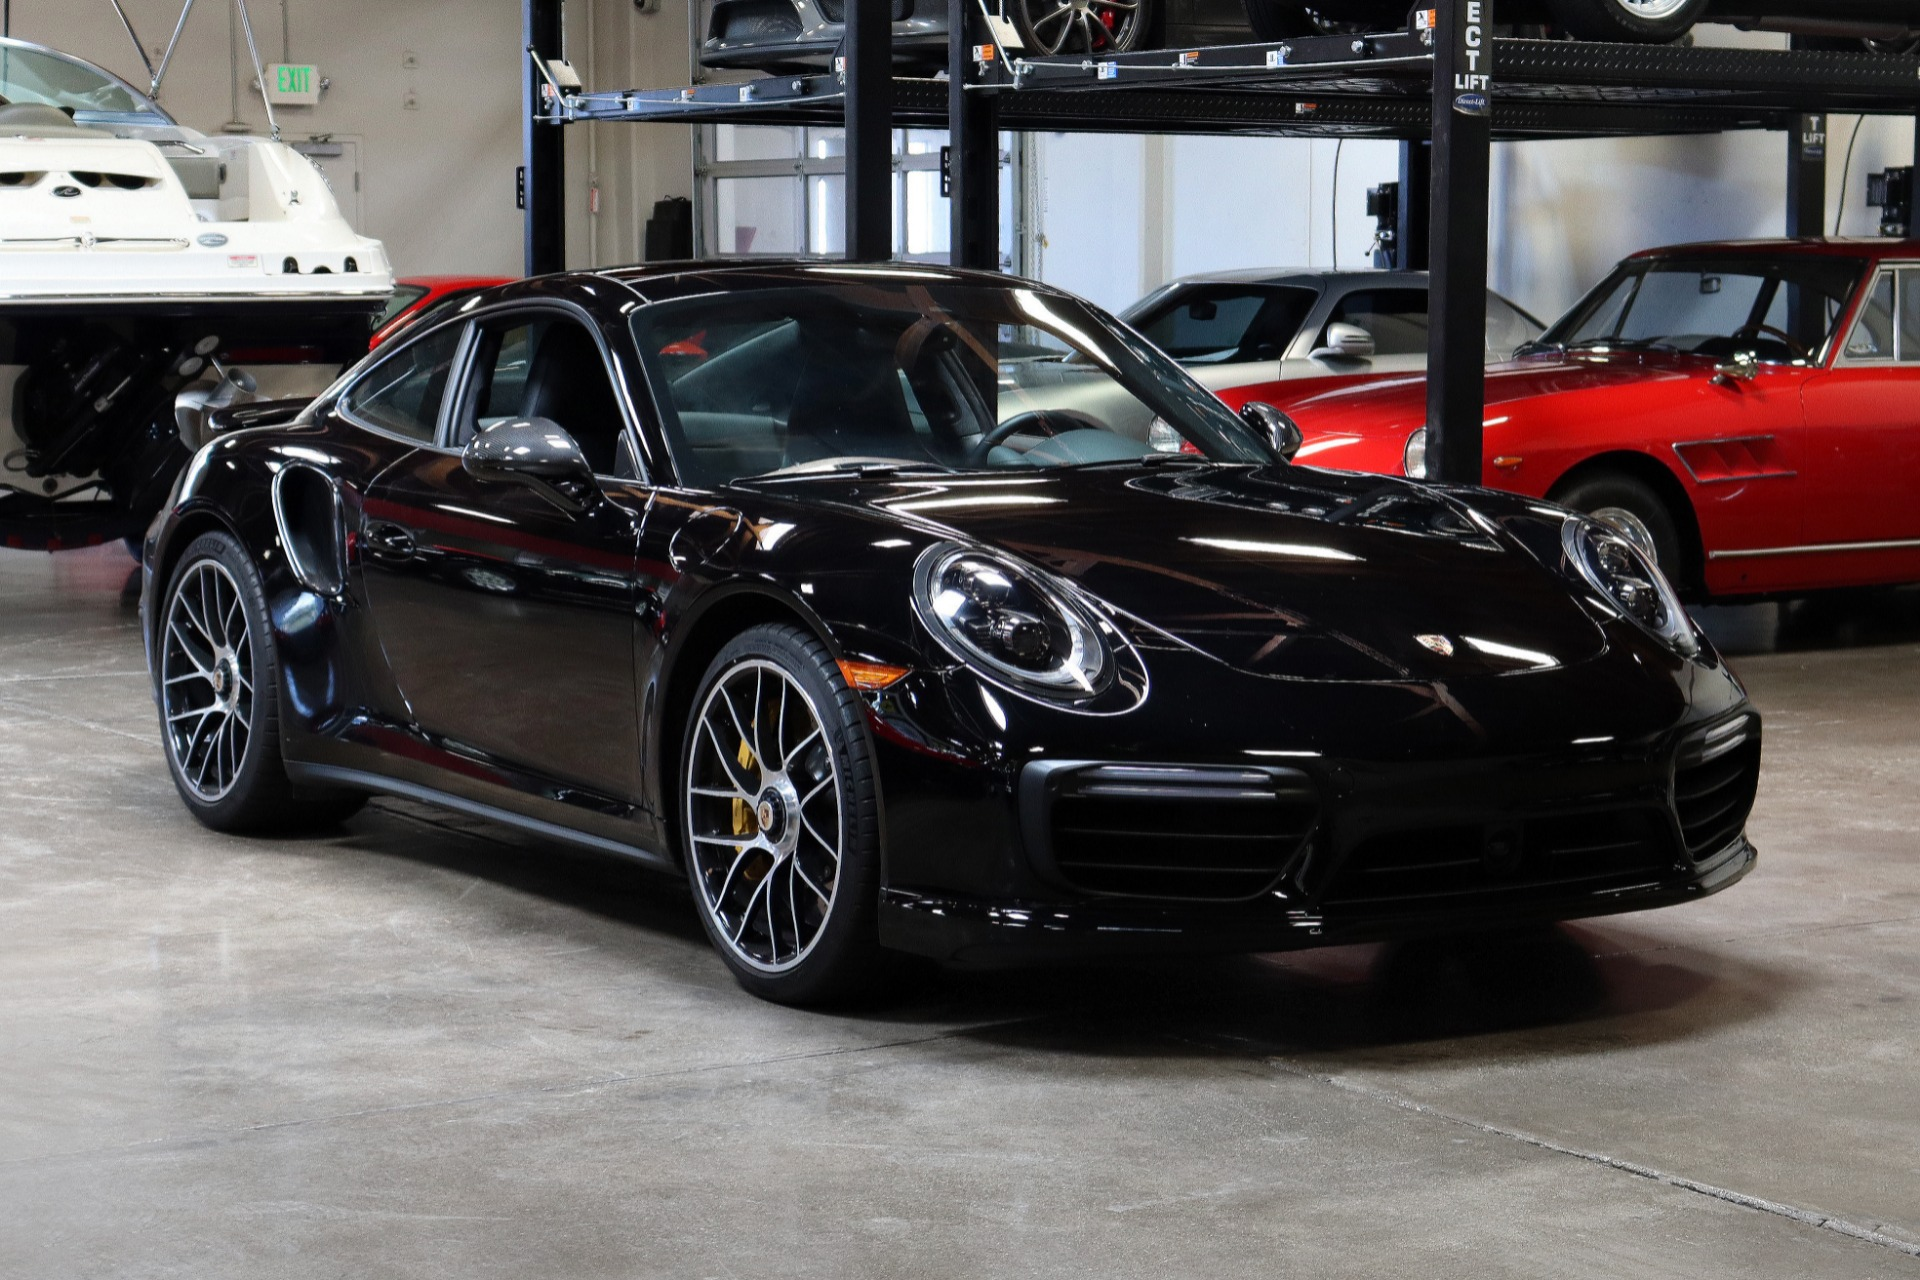 Used 2019 Porsche Turbo S Turbo S for sale $198,995 at San Francisco Sports Cars in San Carlos CA 94070 1